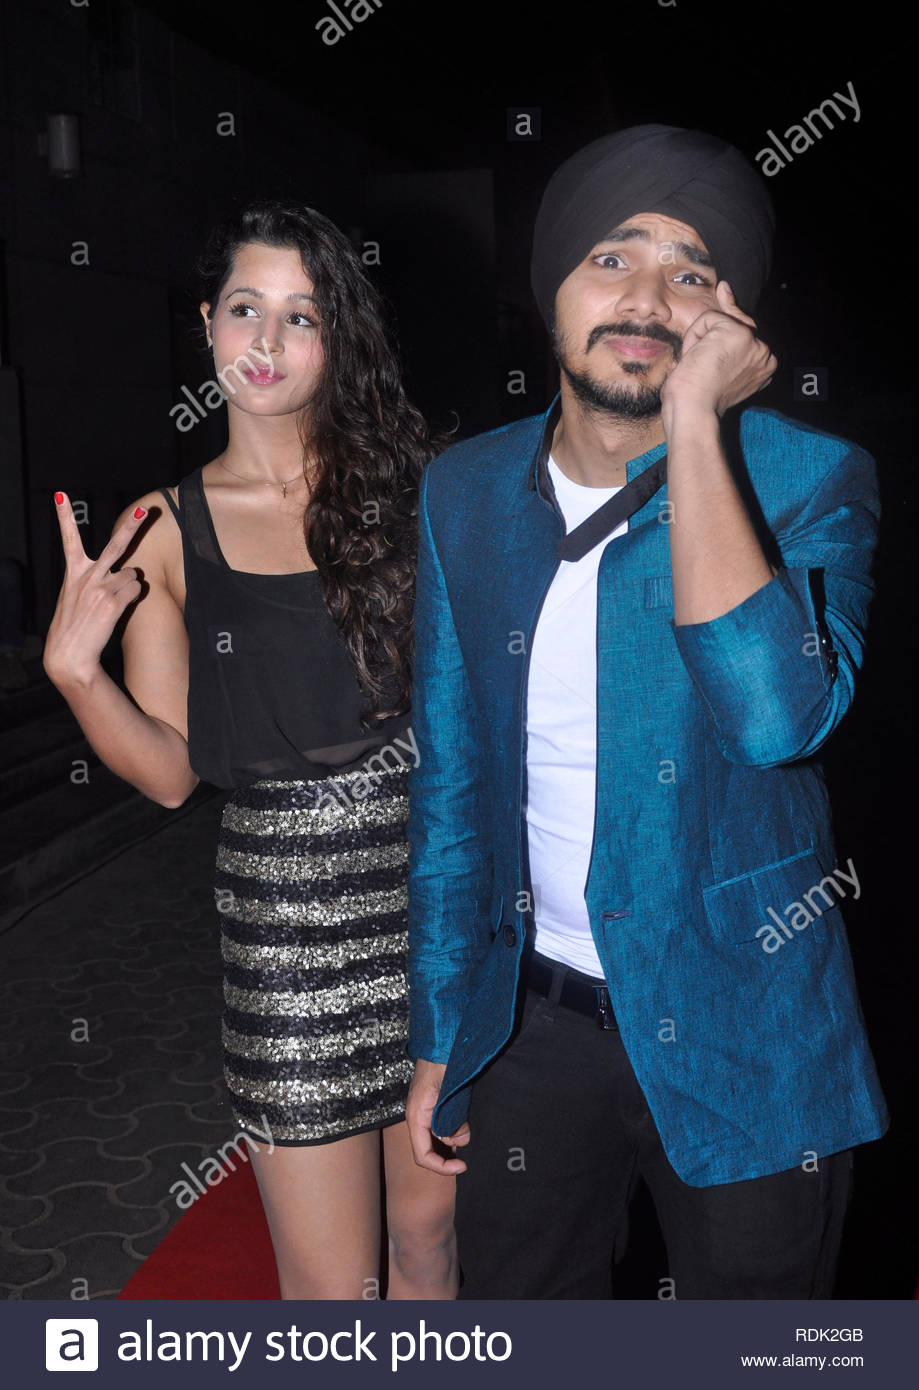 Gurdeep Singh Mehndi, son of popular Indian Bhangra pop singer Daler Mehndi and Newzealand base actress Radhika Vaid pose during the premiere of his debut film 'Meri Shadi Karao' in Mumbai, India on January 03, 2013. (Deven Lad/SOLARIS IMAGES) - Stock Image